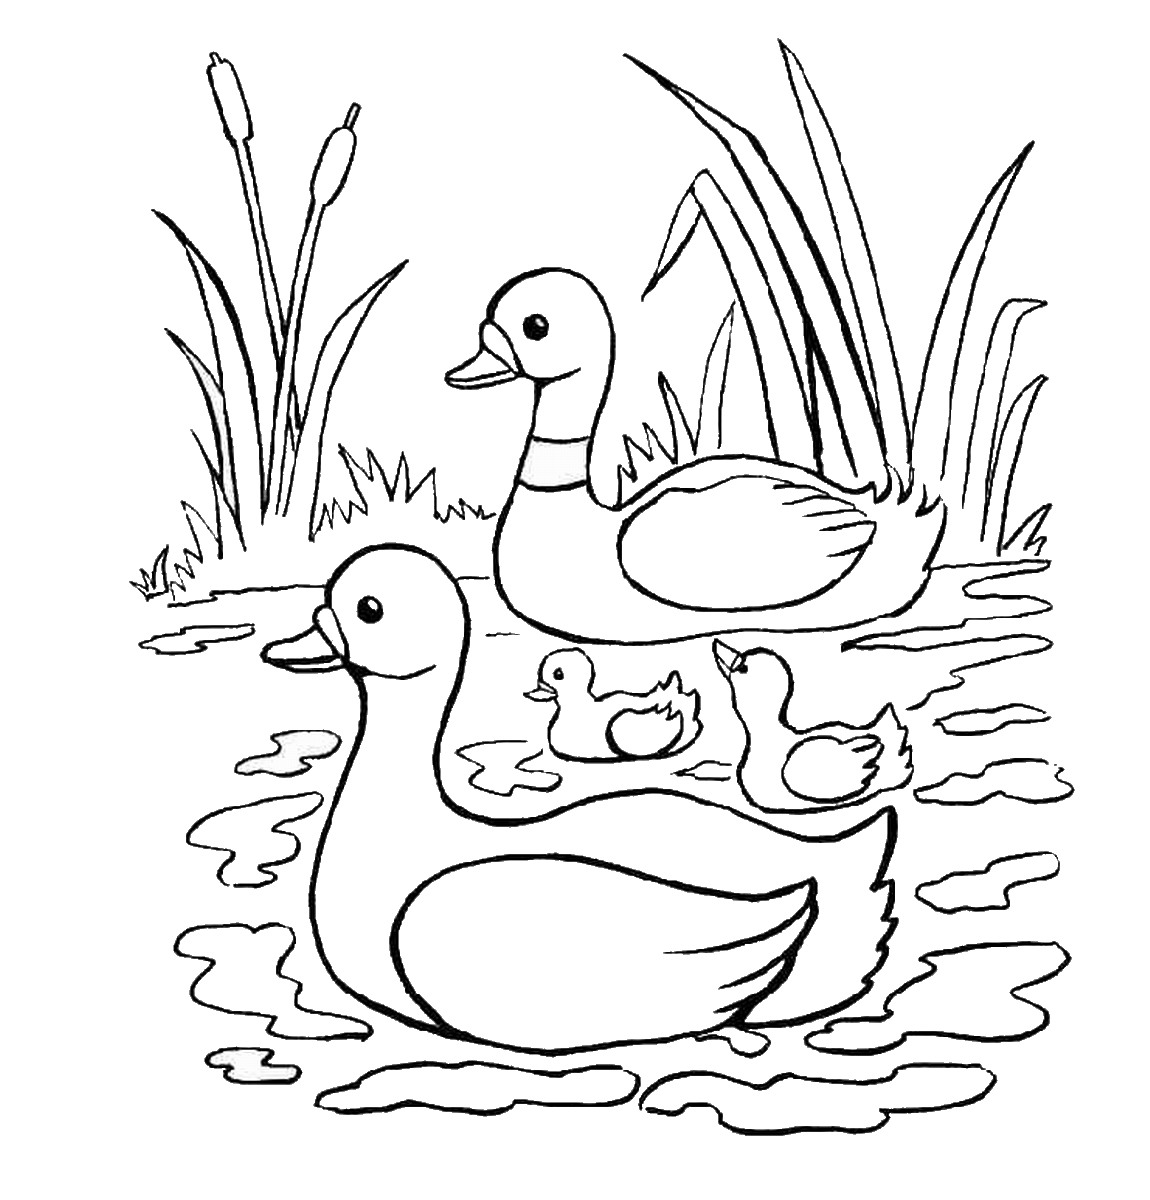 Duck In A Pond Drawing at GetDrawings.com   Free for personal use ...